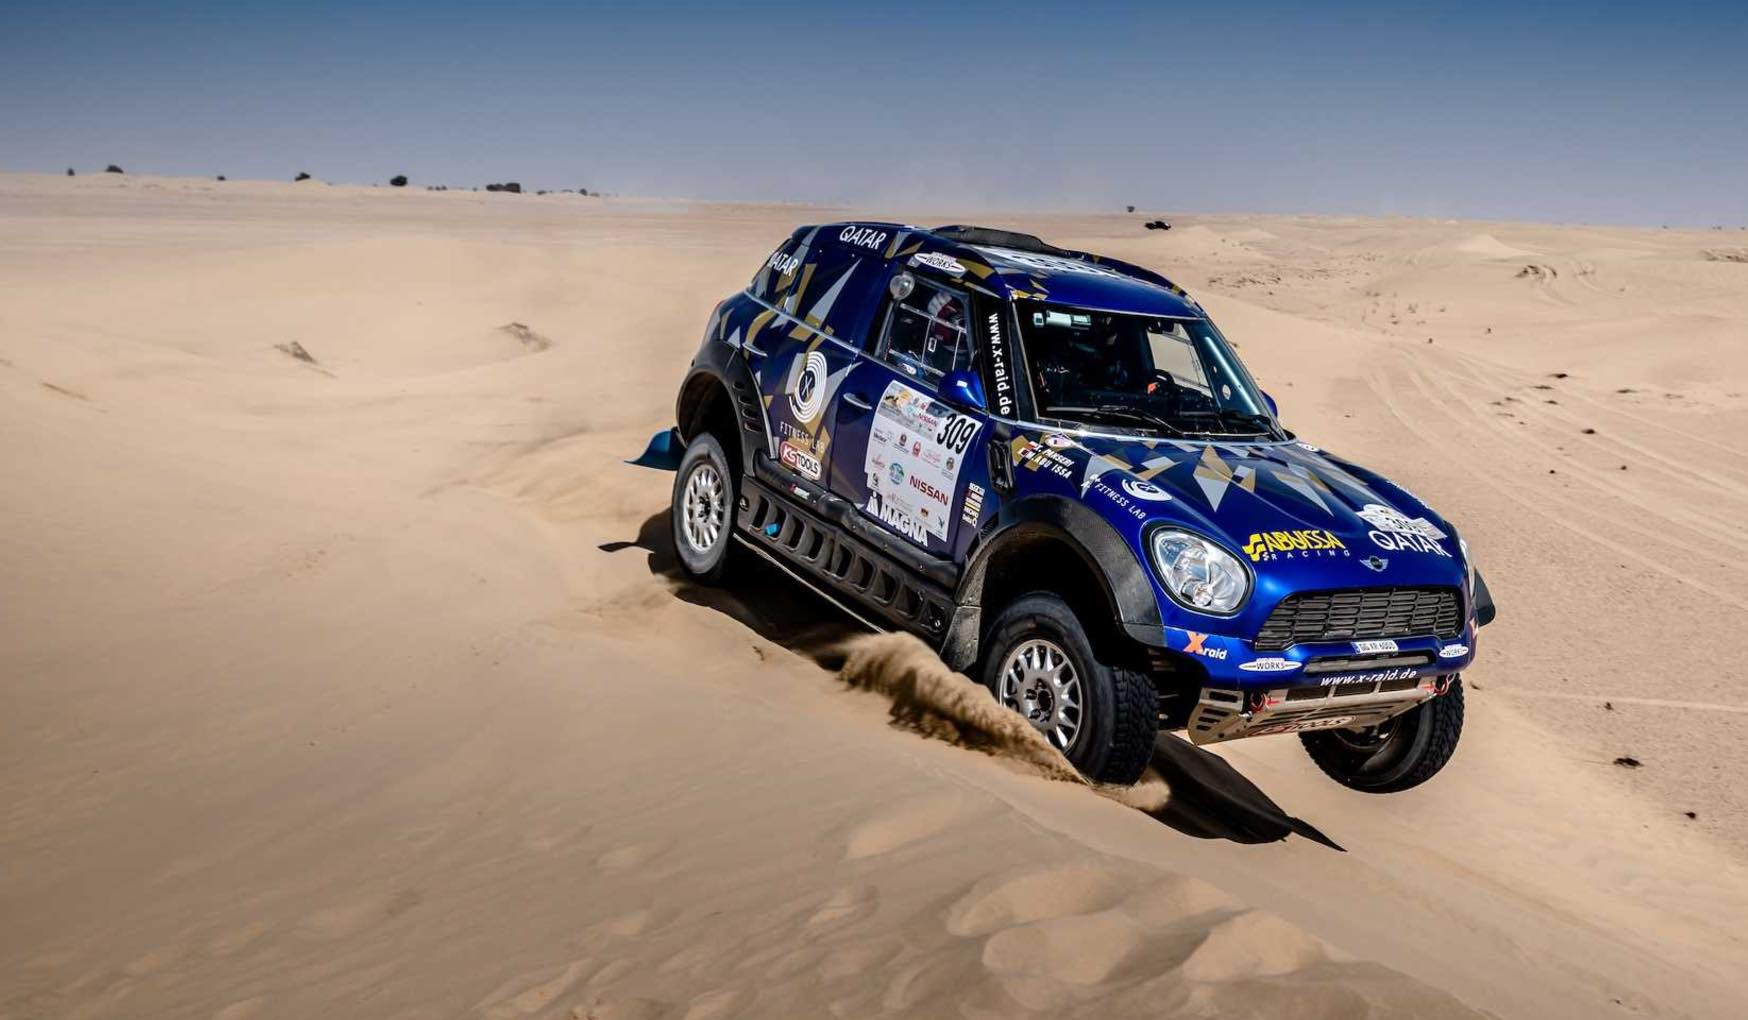 2017 Dubai International Baja: MINI celebrates third place result